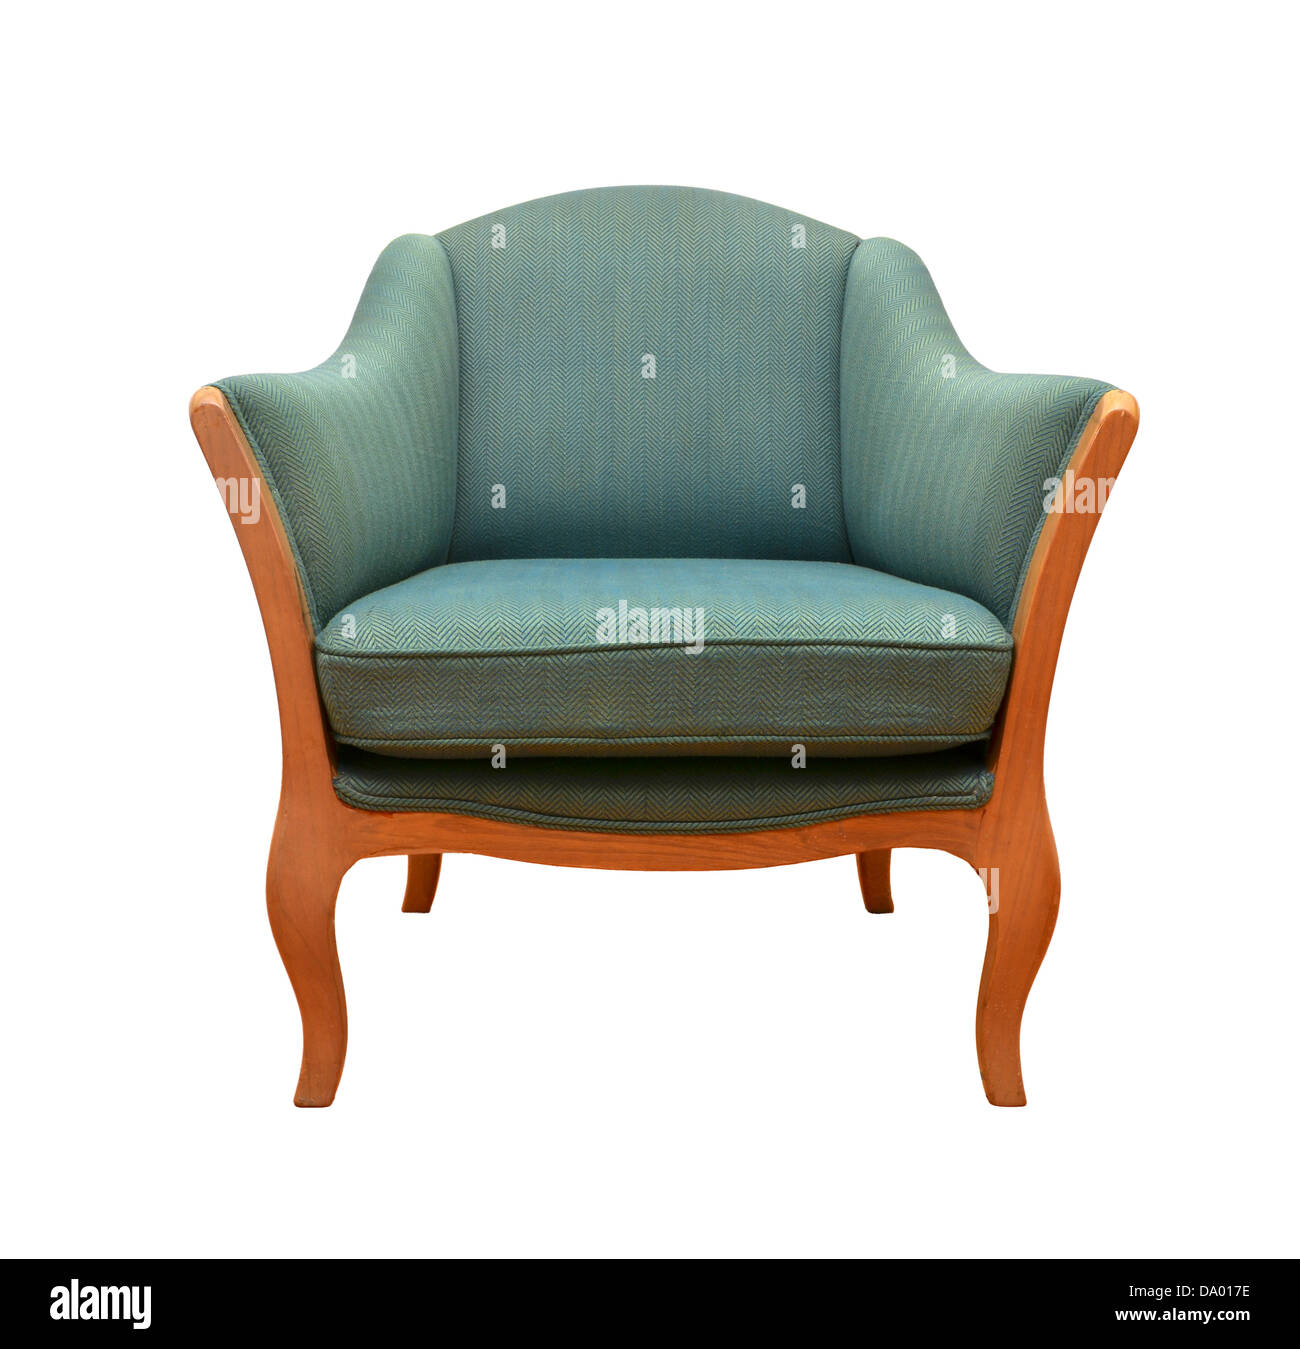 fabric bergere with clipping path - Stock Image